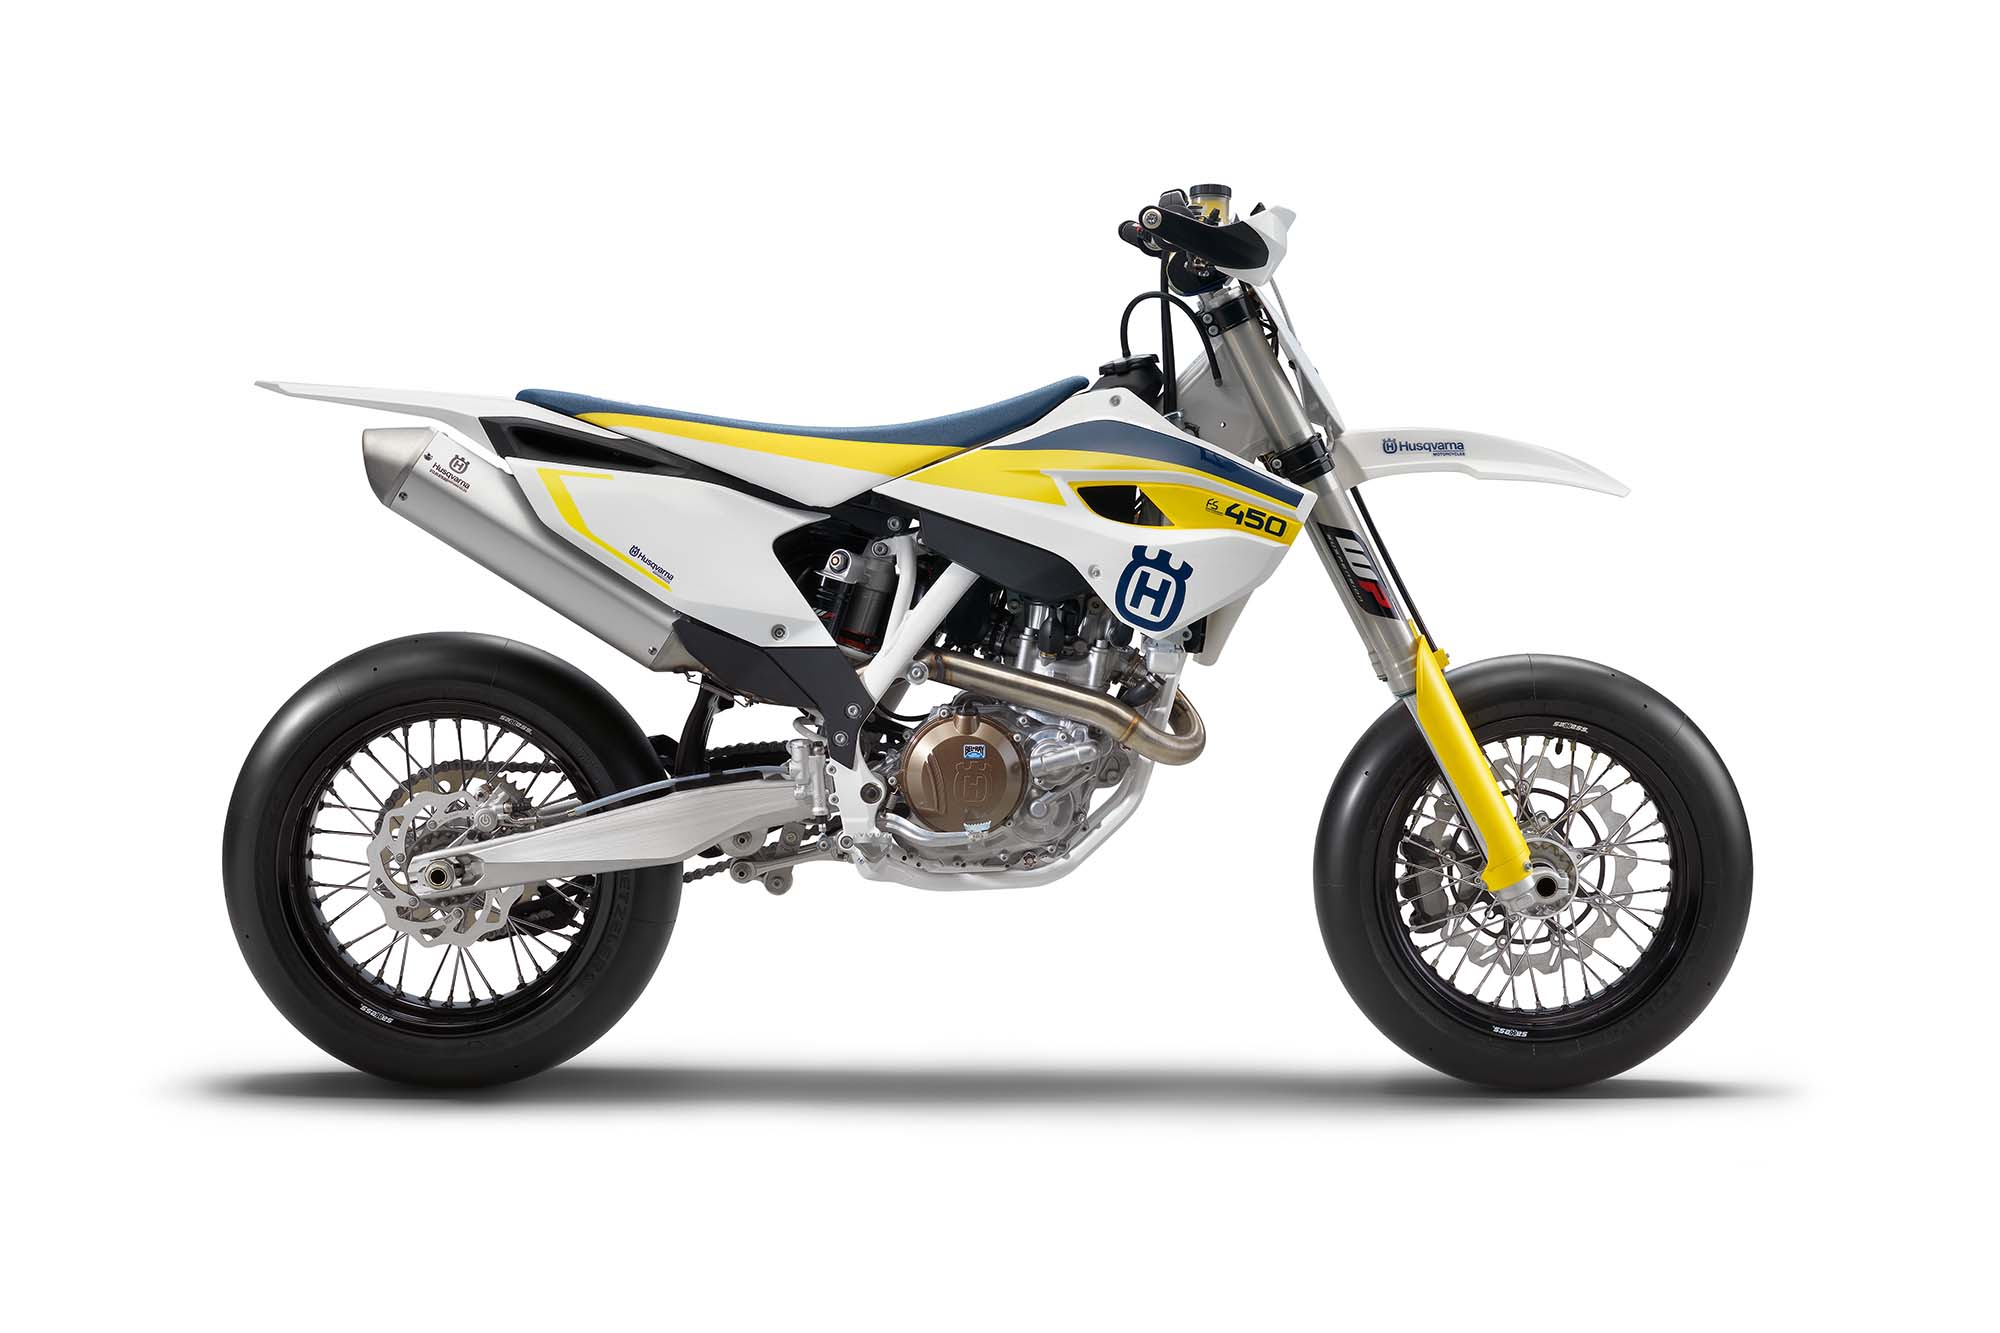 Husqvarna Sm 450r Bikes: Husky Returns To Supermoto